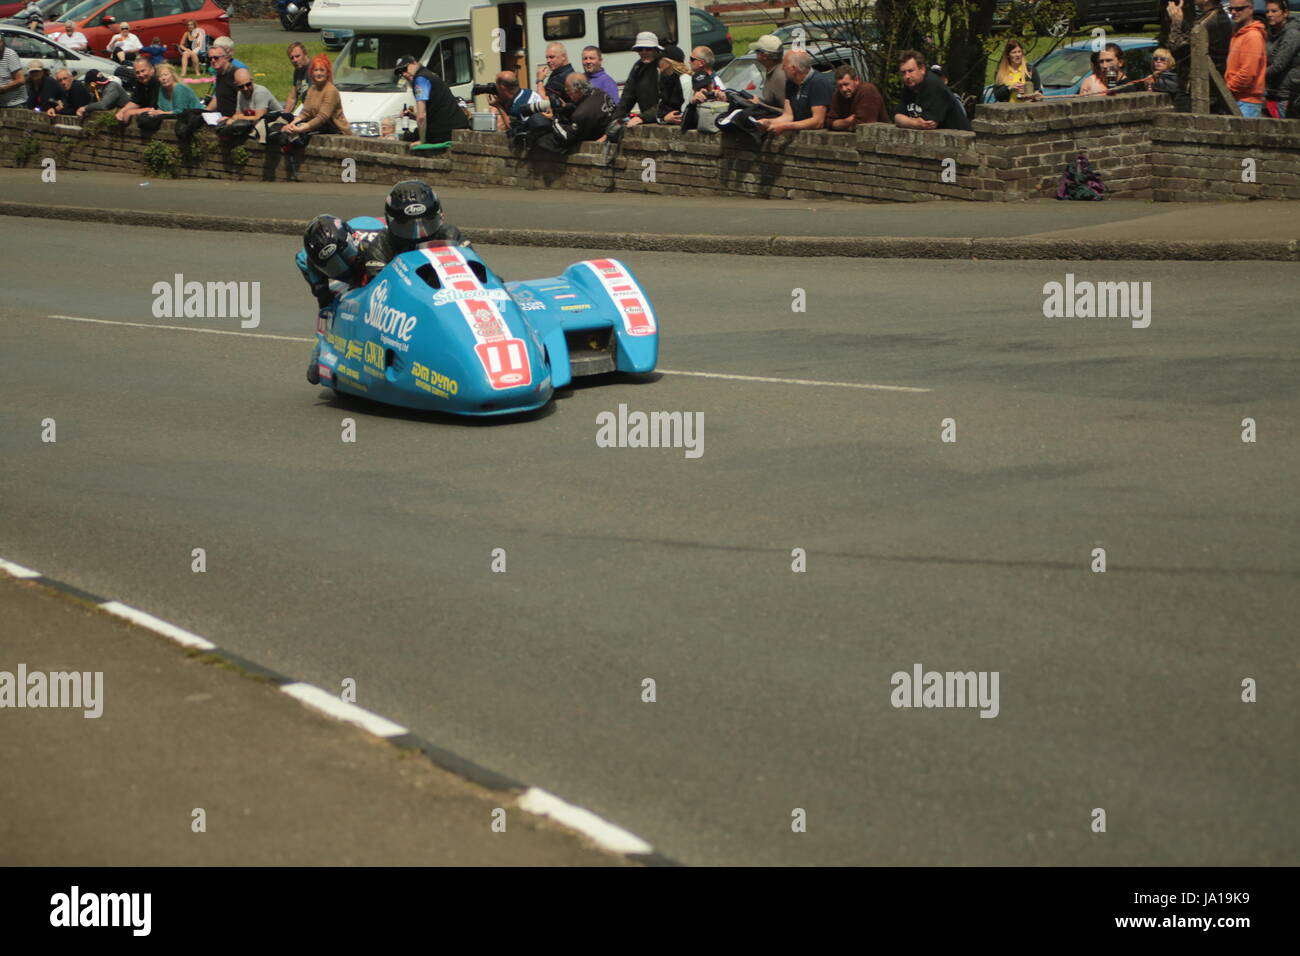 Isle Of Man TT Races, Beiwagen Praxis Qualifikationsrennen, Samstag, 3. Juni 2017. Beiwagen-qualifying-Session. Stockbild